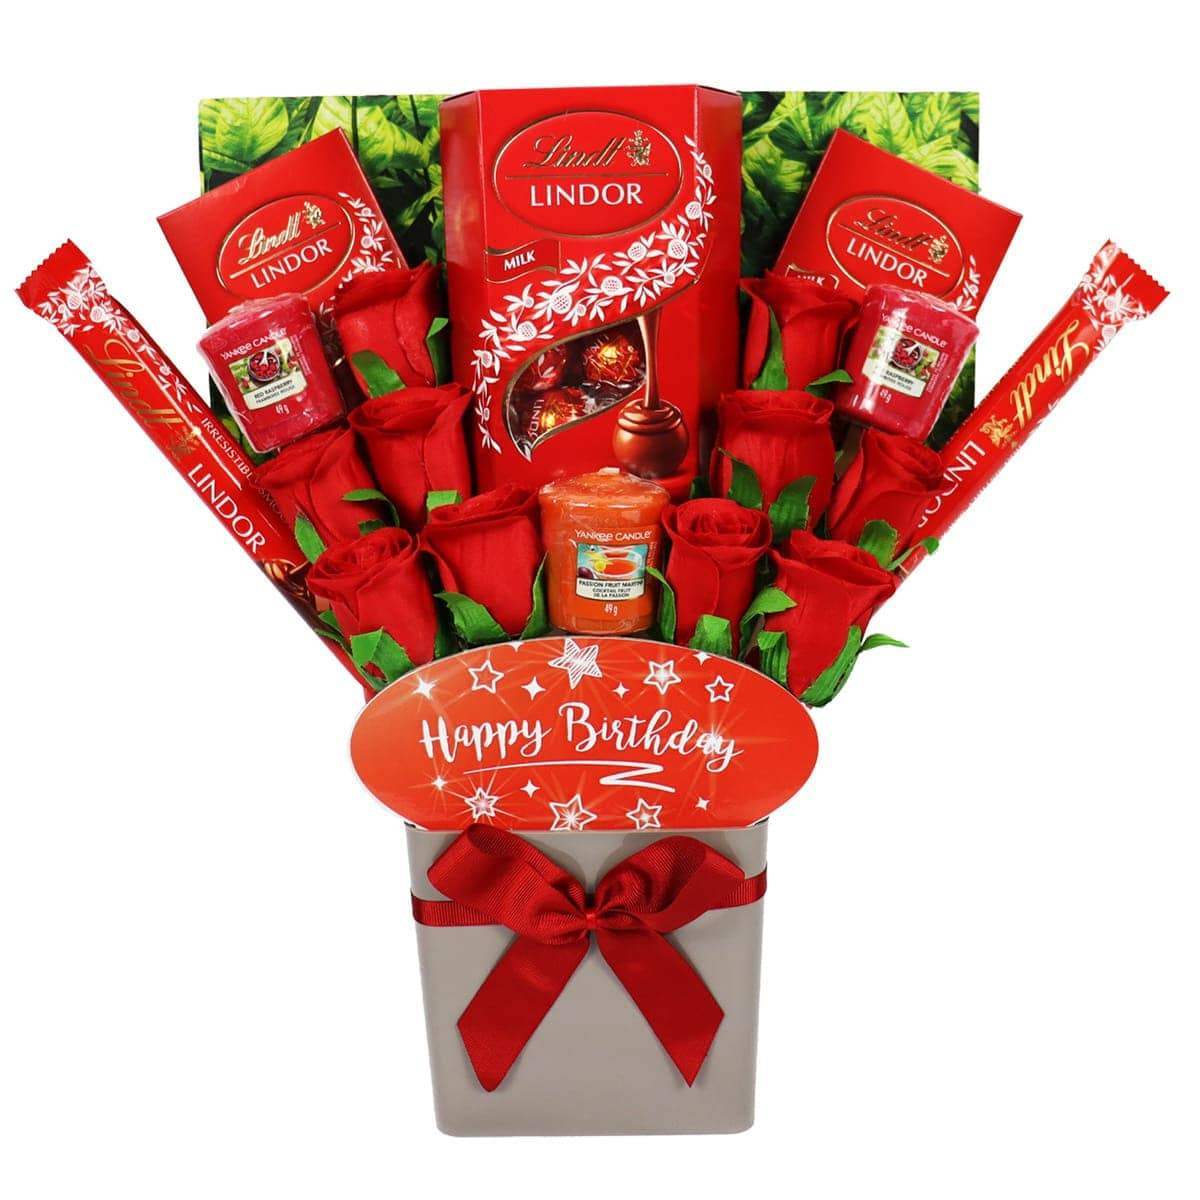 The Happy Birthday Yankee Candle and Red Rose Bouquet